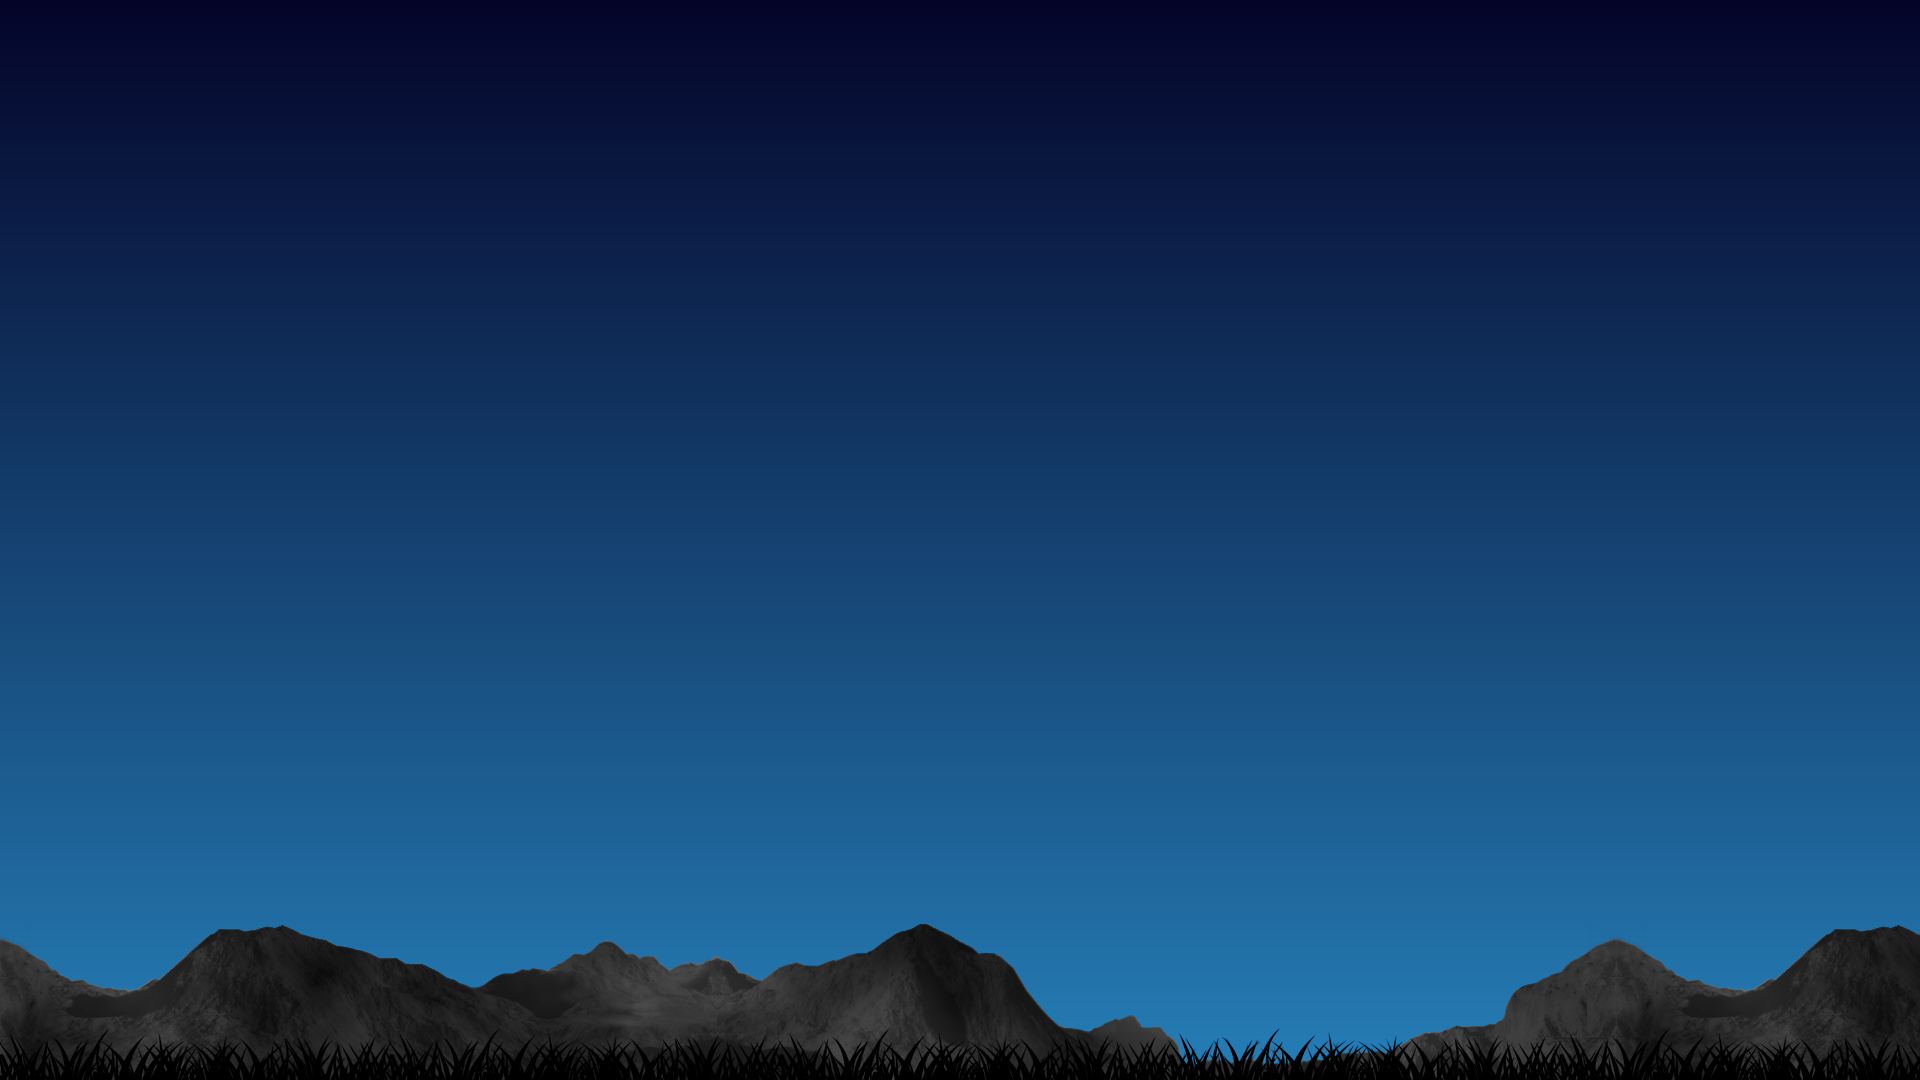 related pictures background sky png 1920x1080